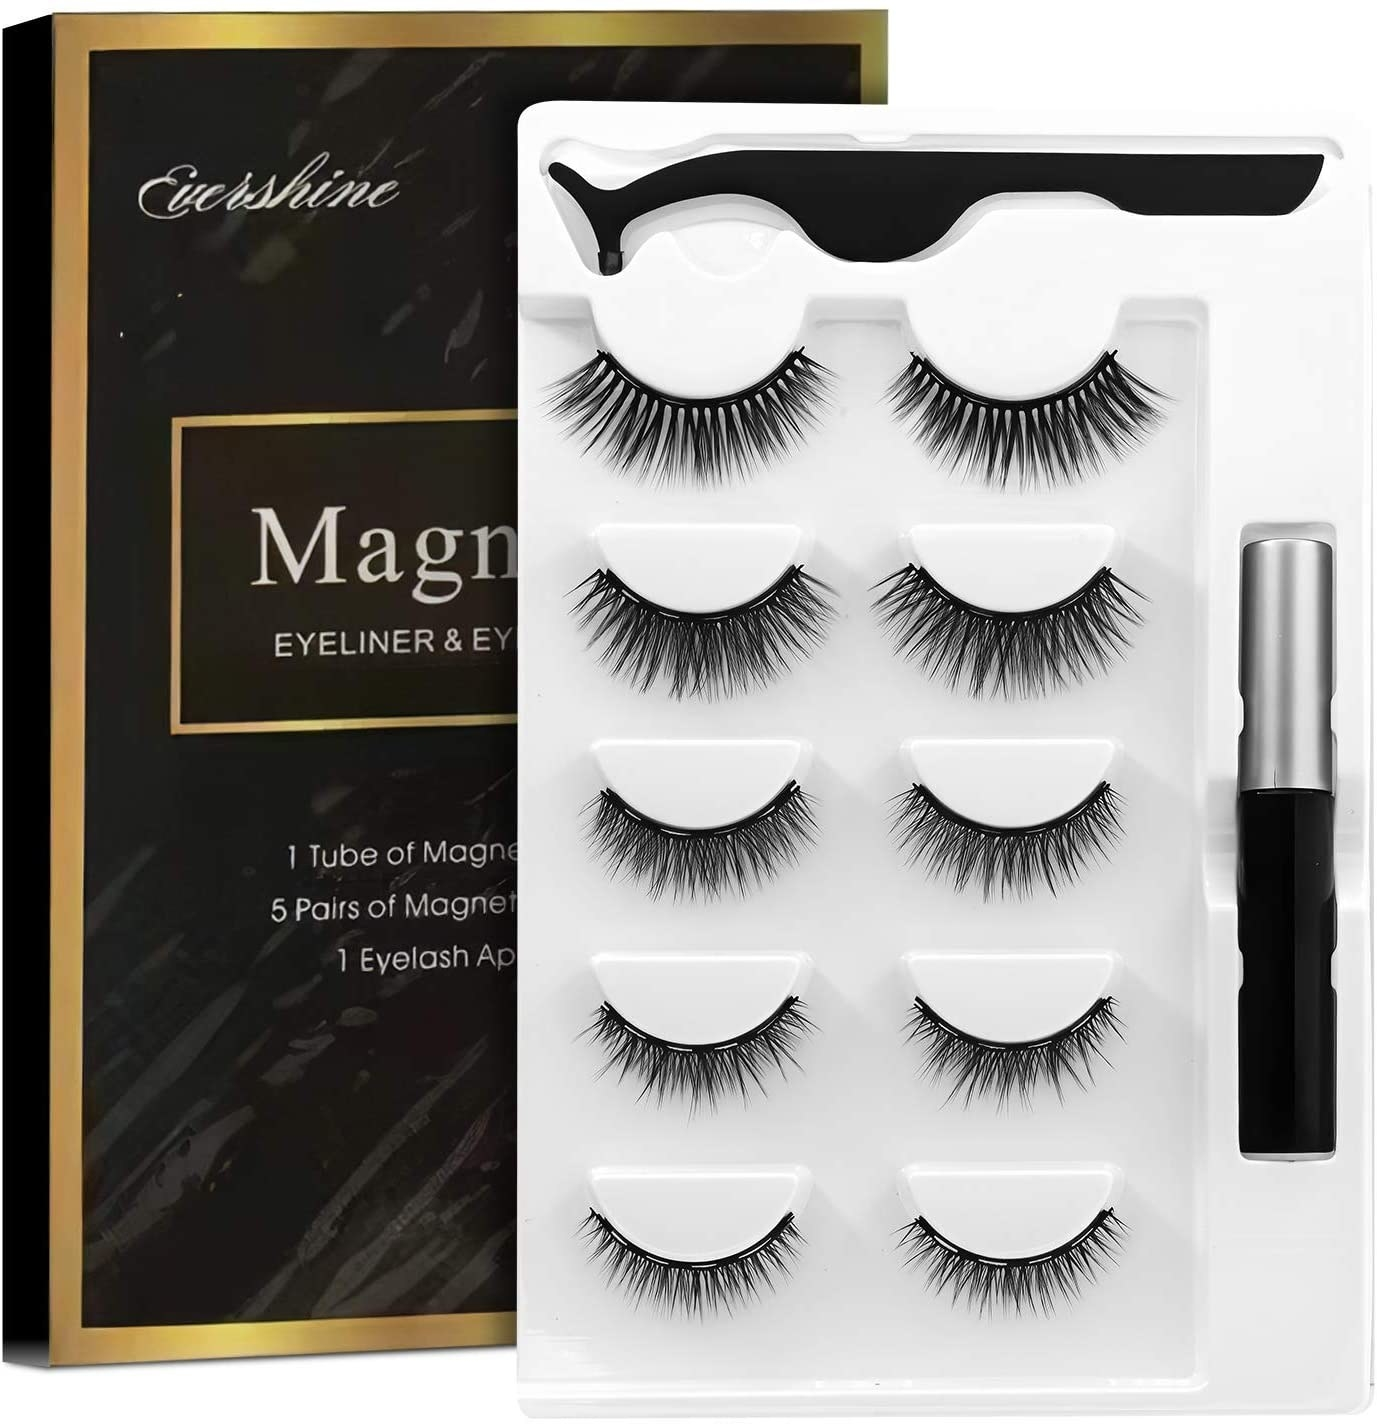 Five pairs of lashes that vary in length and volume, next to a tube of eyeliner and curved tweezers